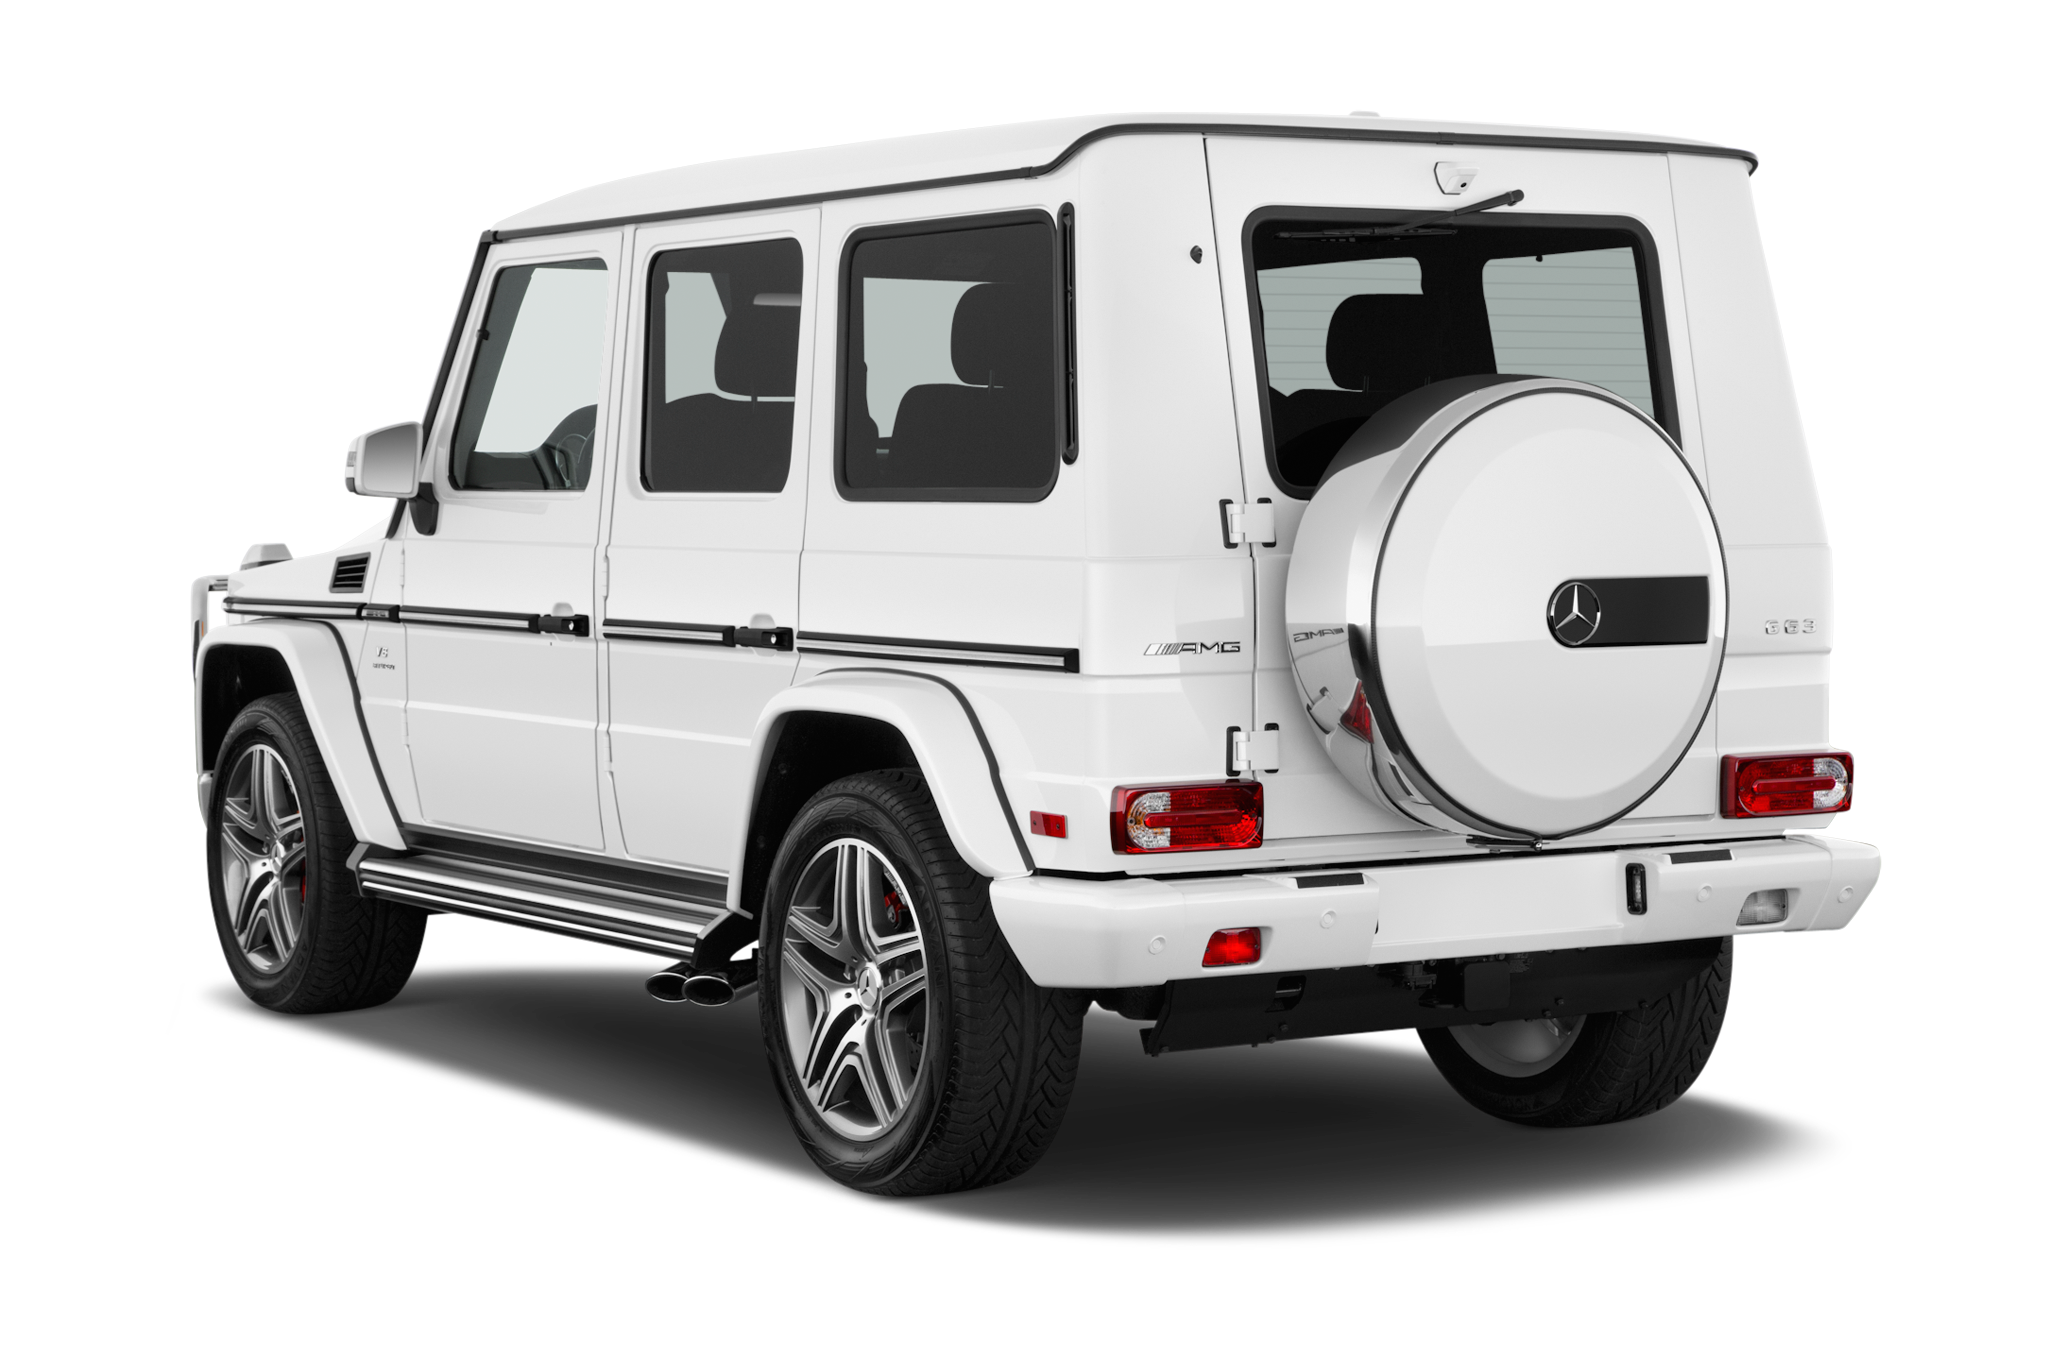 Inkas Armored Limousine Based on 2018 Mercedes AMG G 63 Starts at